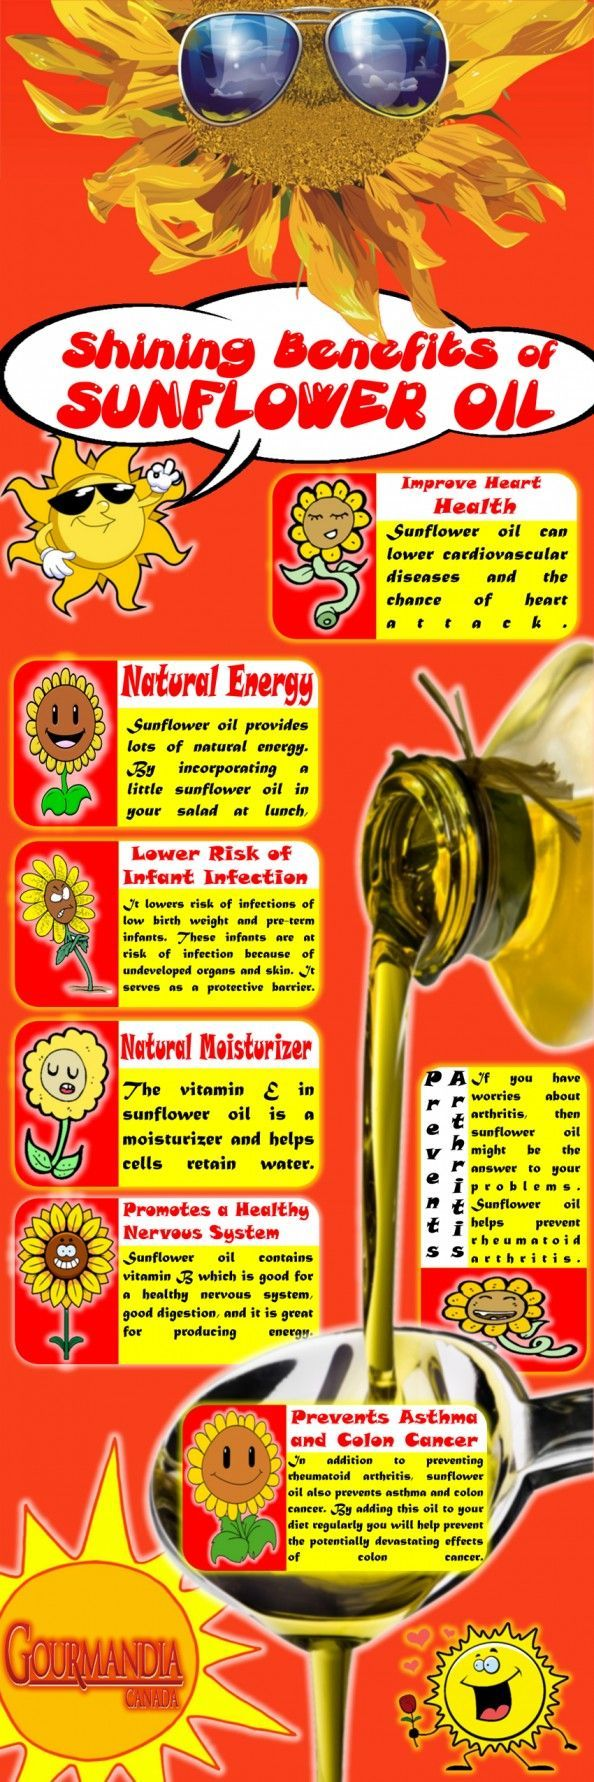 benefits of sunflower oil | Shining Benefits of Sunflower Oil Infographic | Pillows